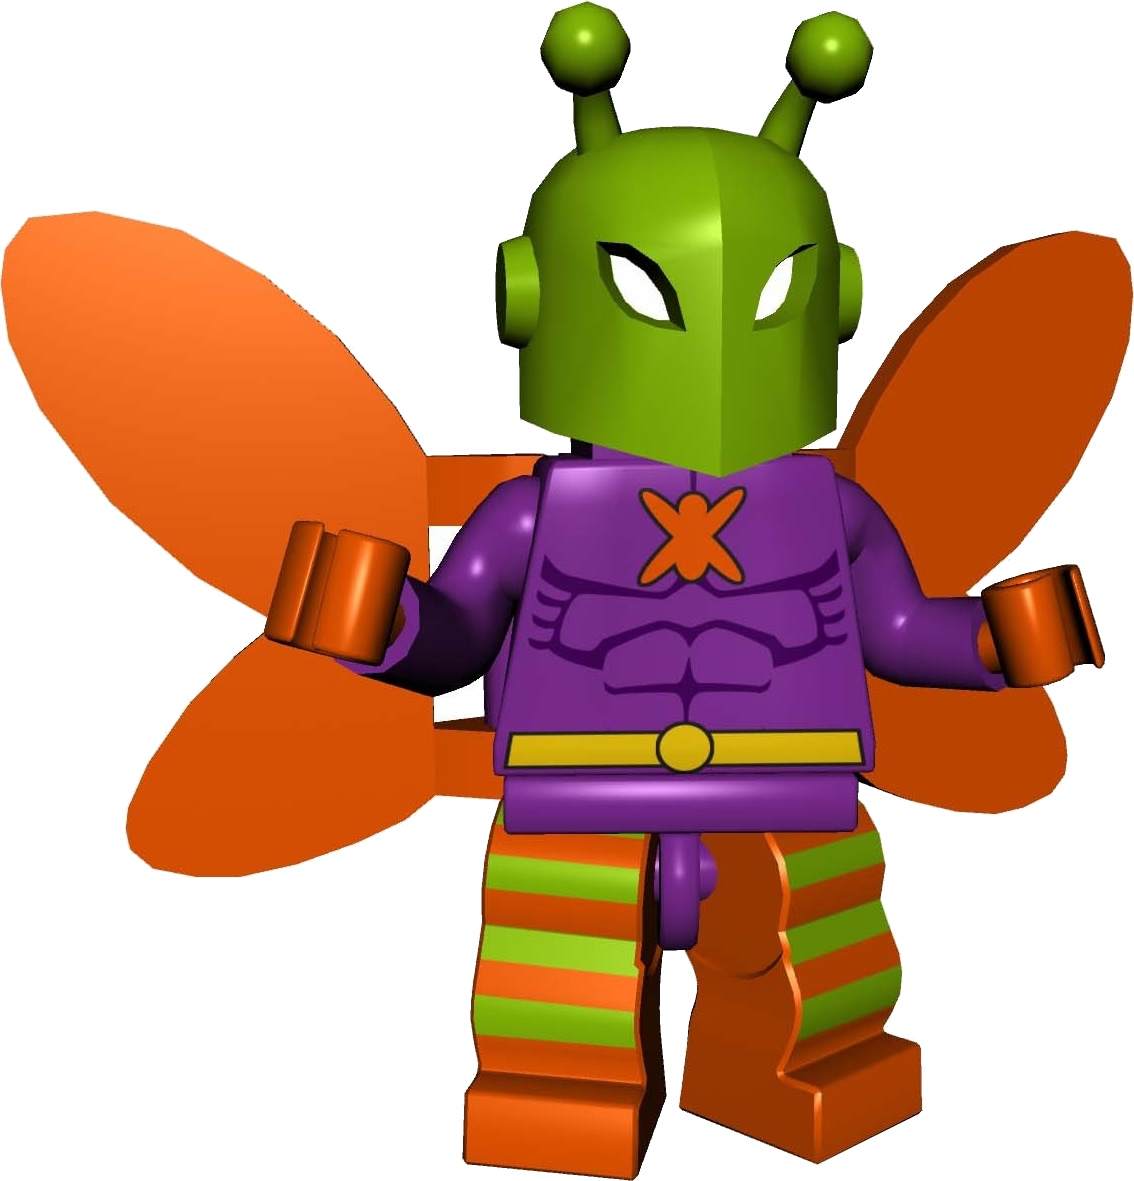 1134x1181 Killer Moth Lego Batman Wiki Fandom Powered By Wikia